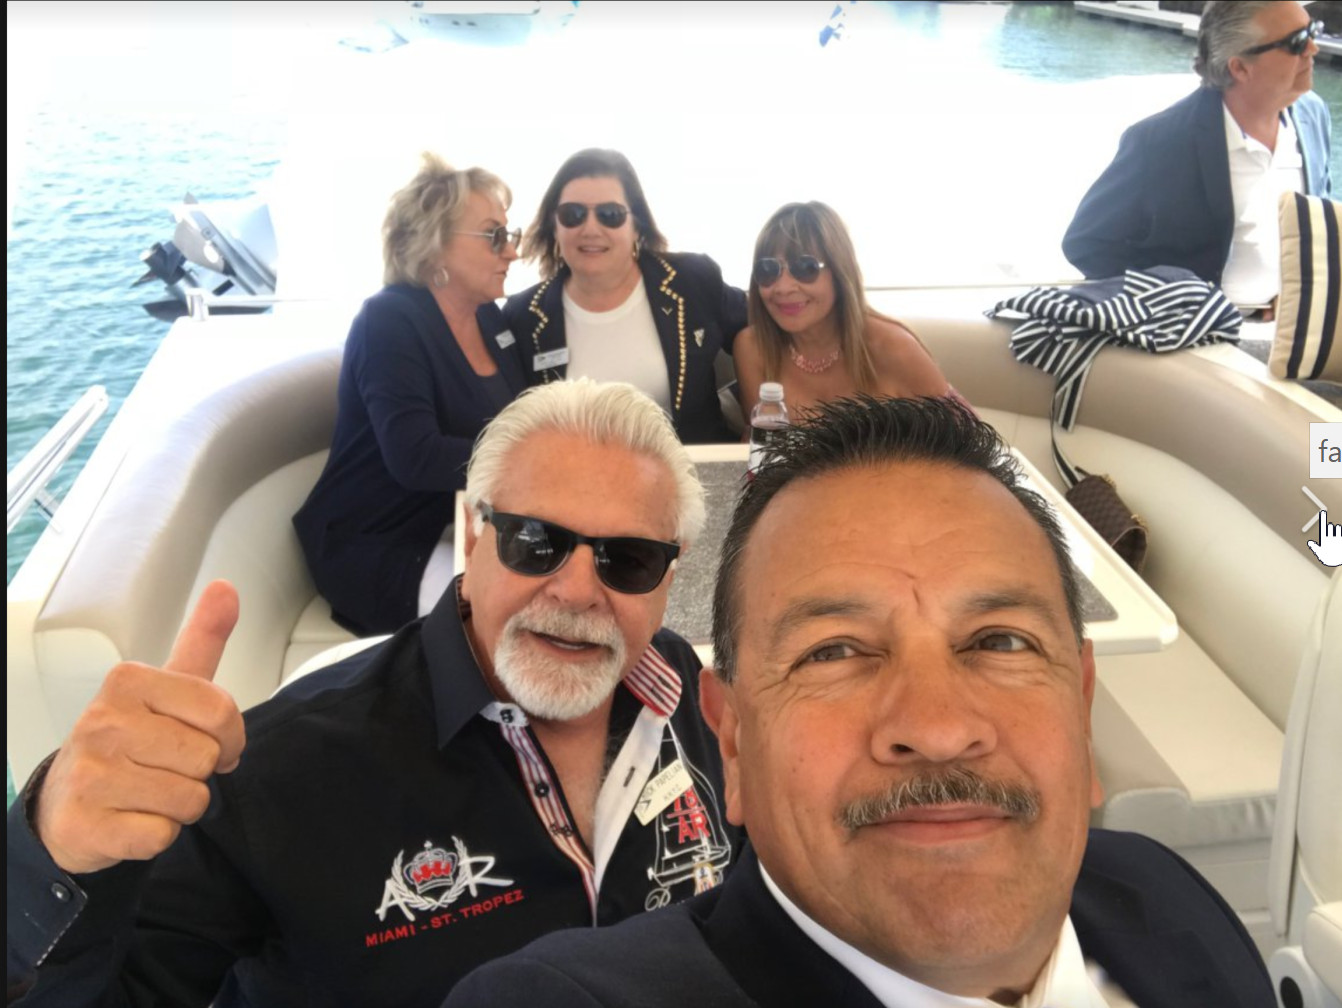 Rudy with others in selfi.jpg